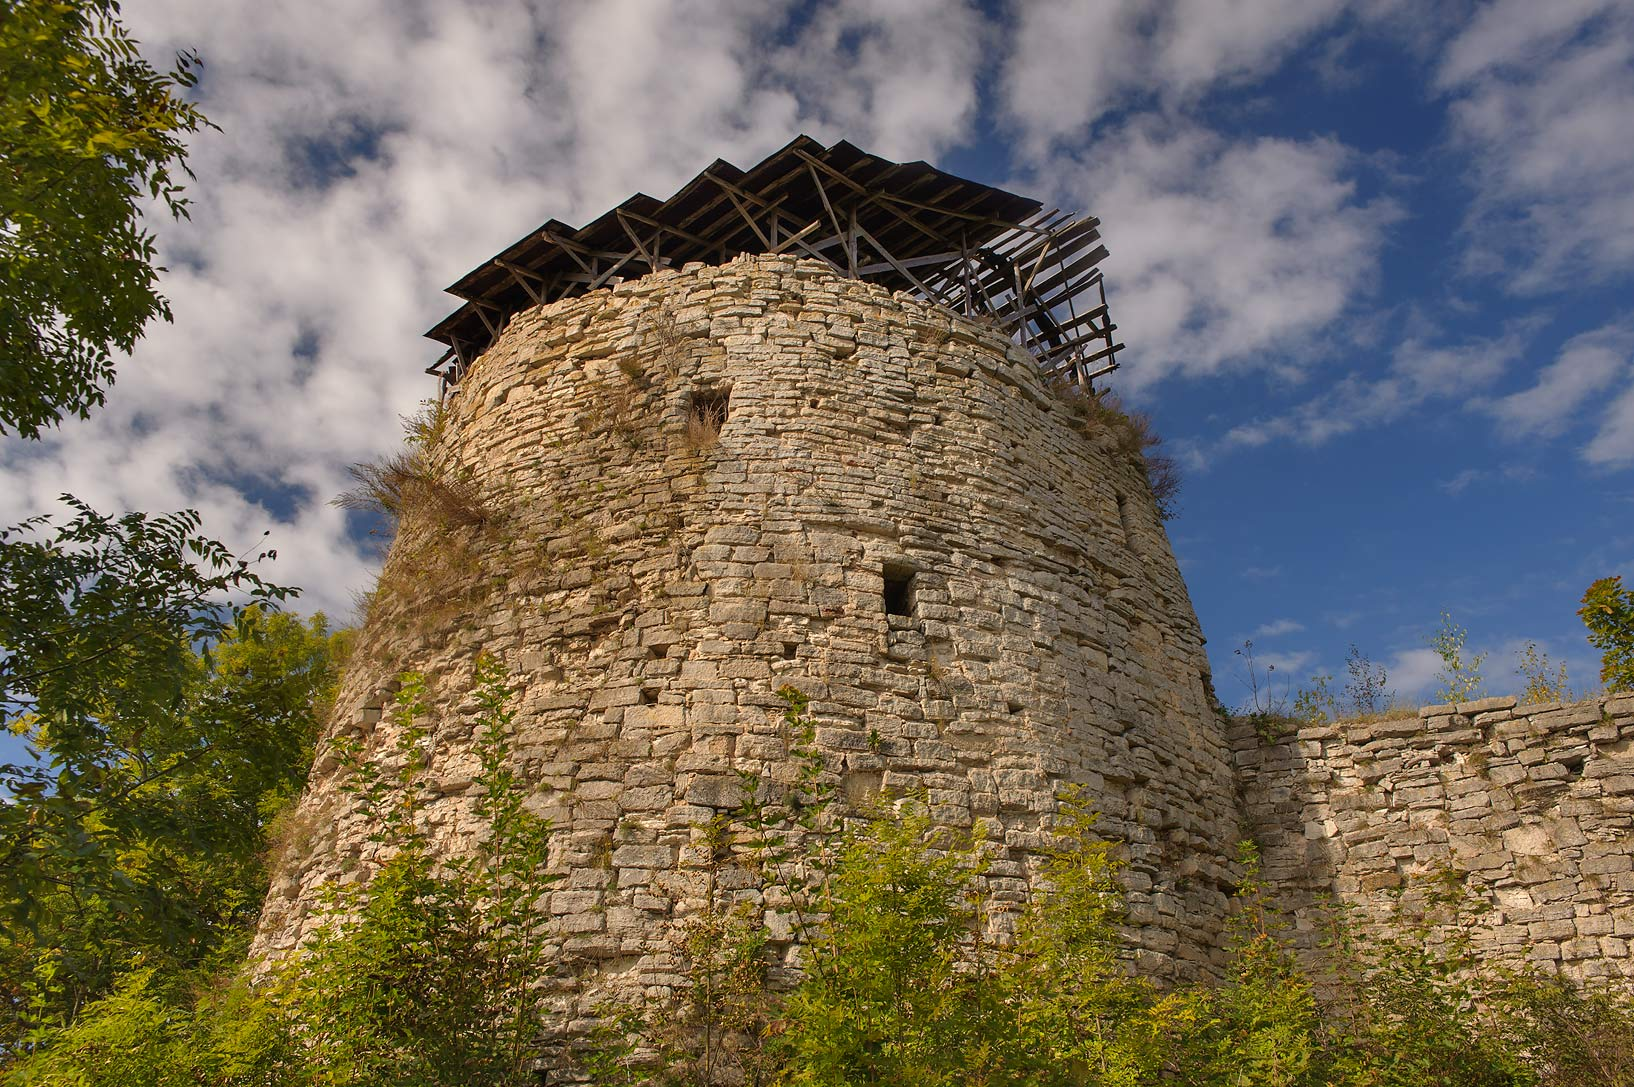 Middle Tower of Porkhov Fortress in Porkhov, Pskov Region. Russia